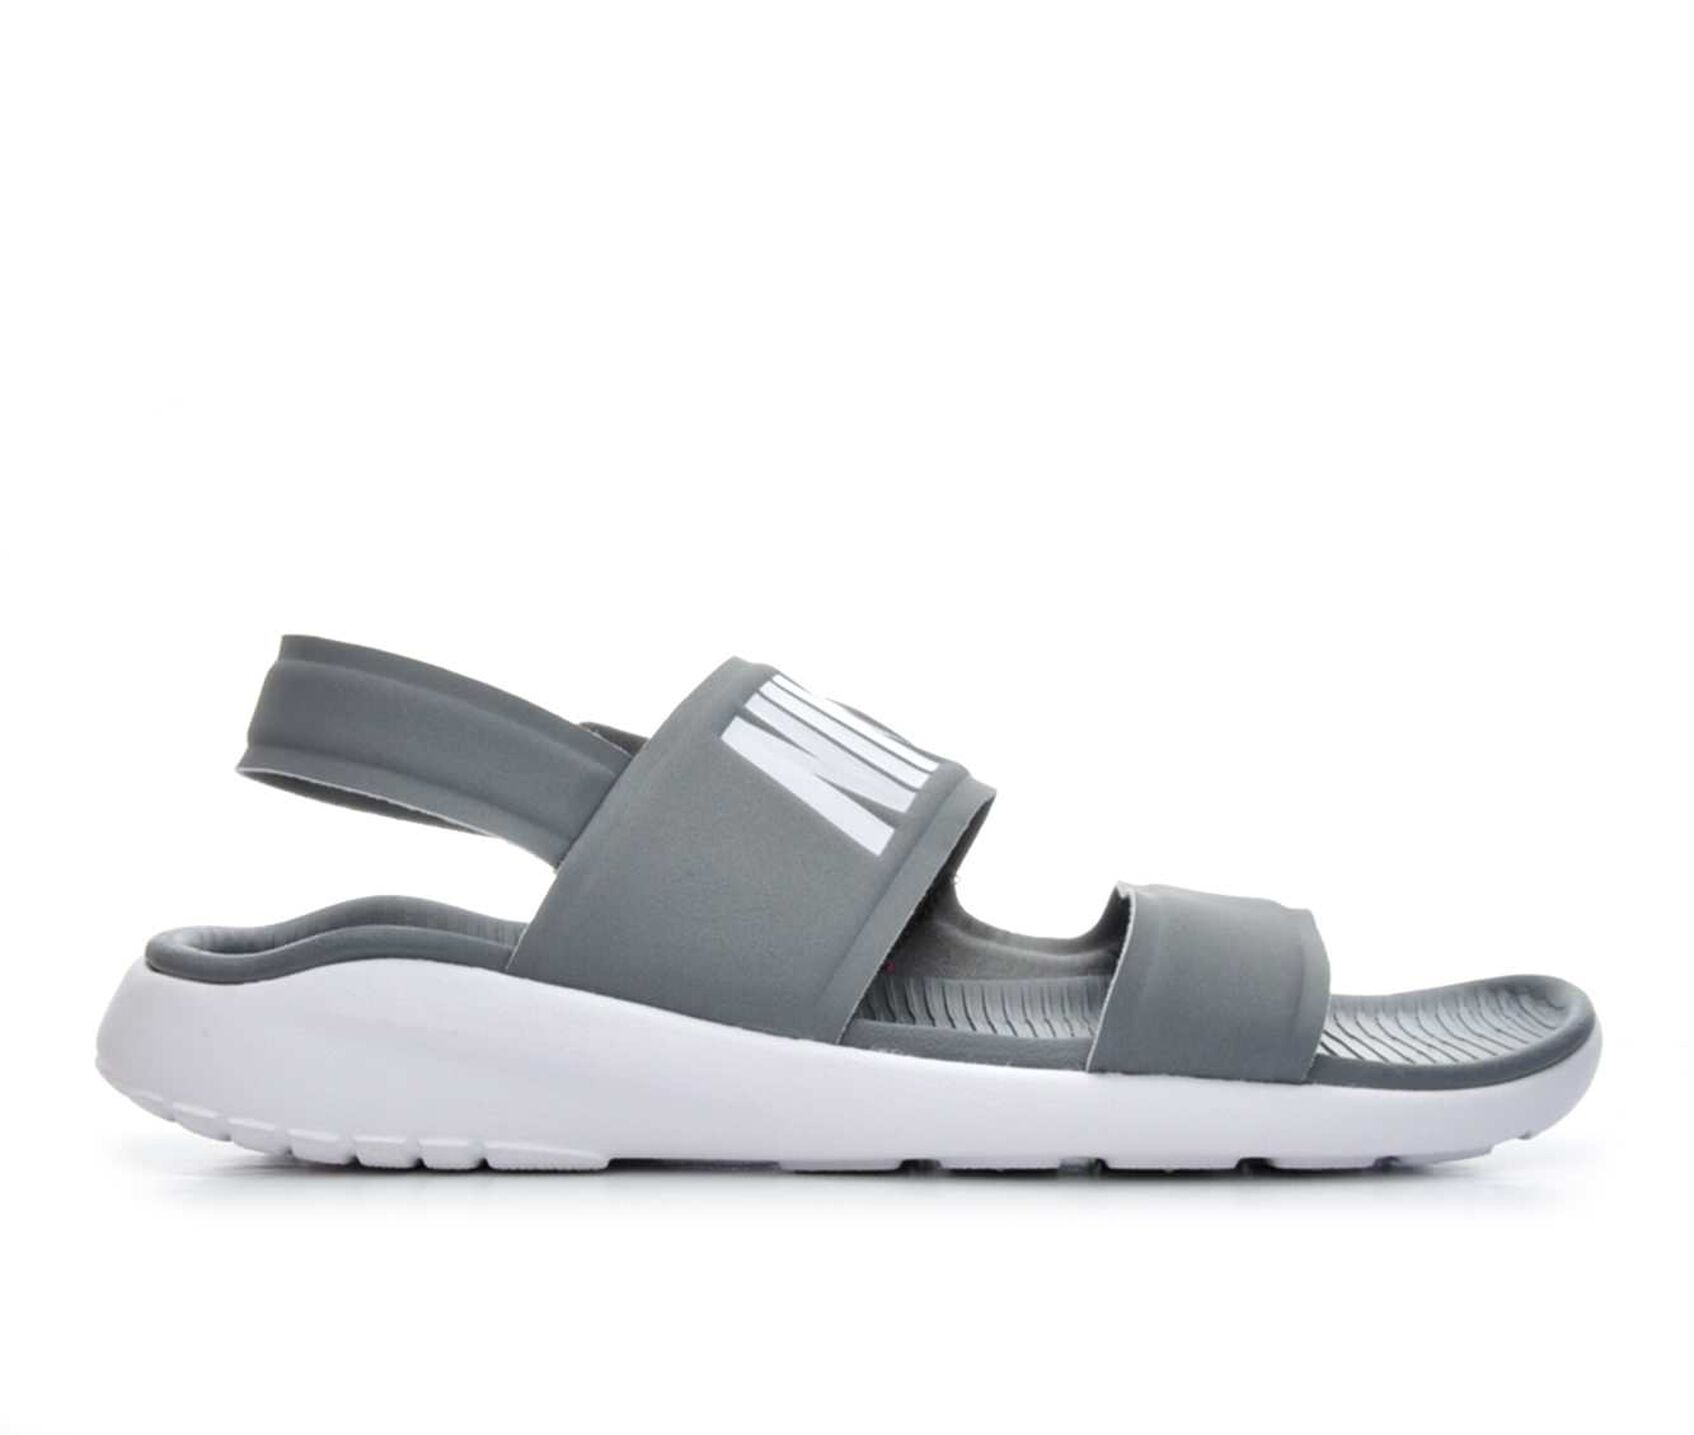 reputable site 5b614 5fdfd Women s Nike Tanjun Sandal Sport Sandals   Shoe Carnival